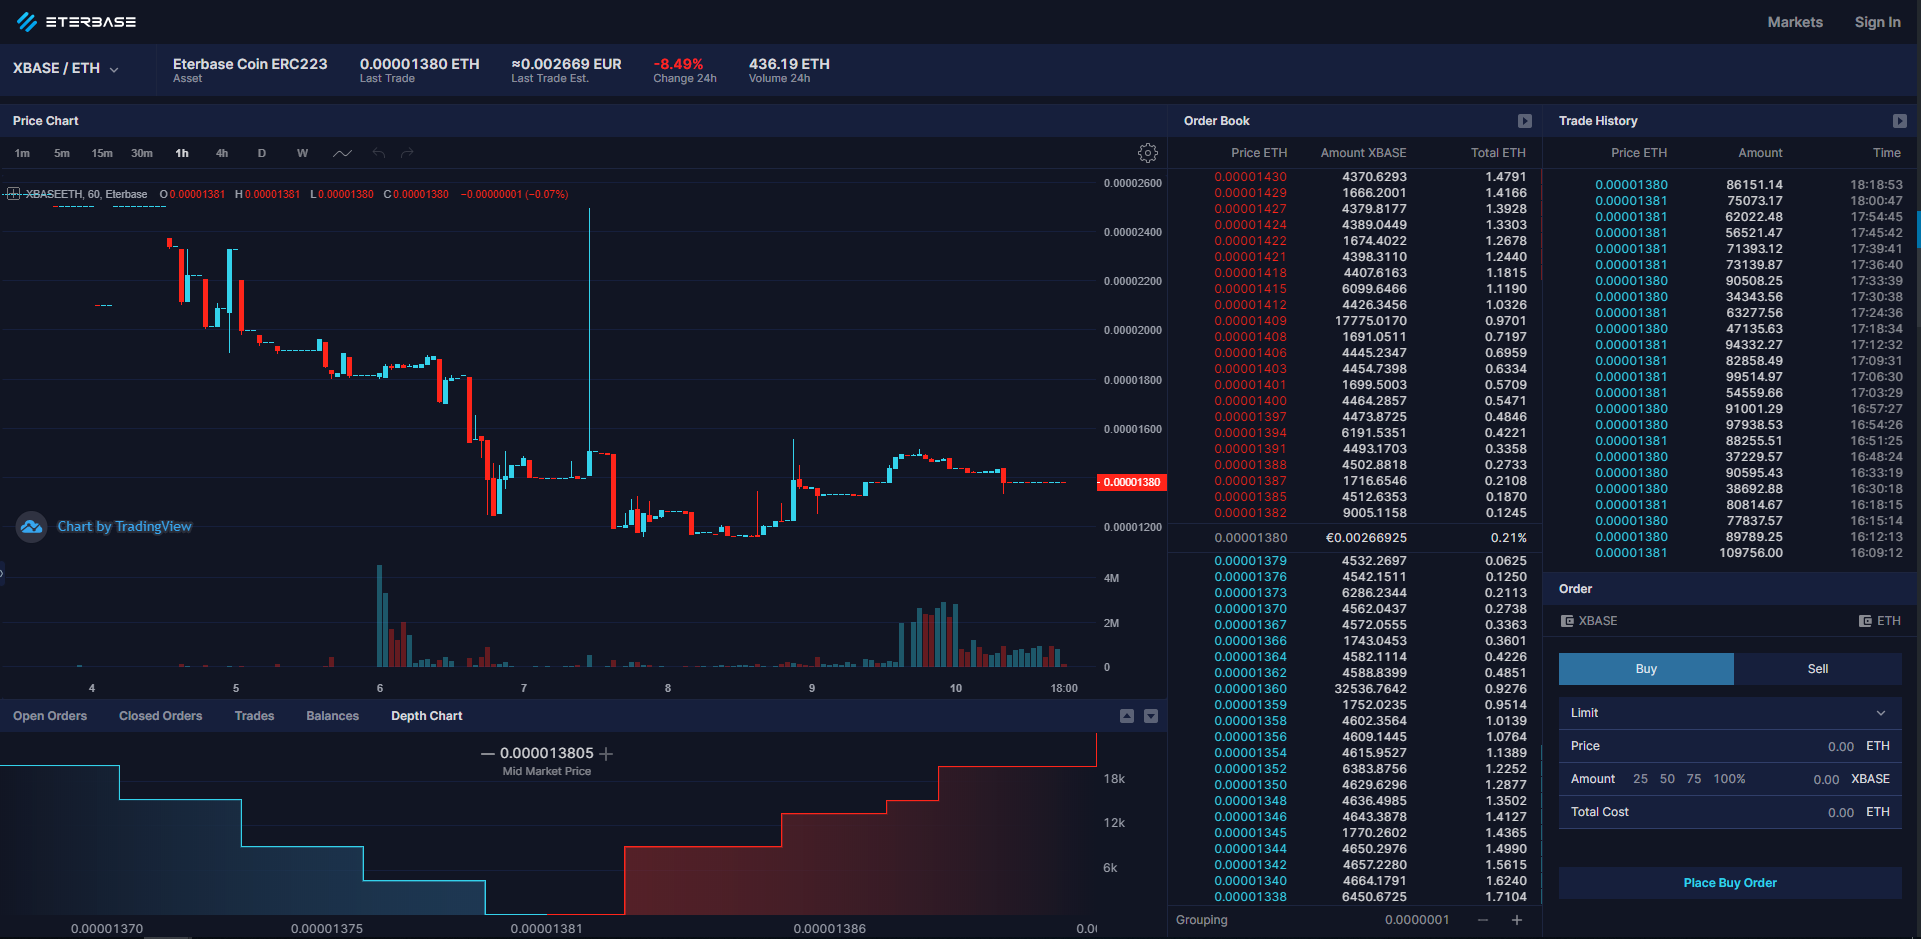 Eterbase Trading View